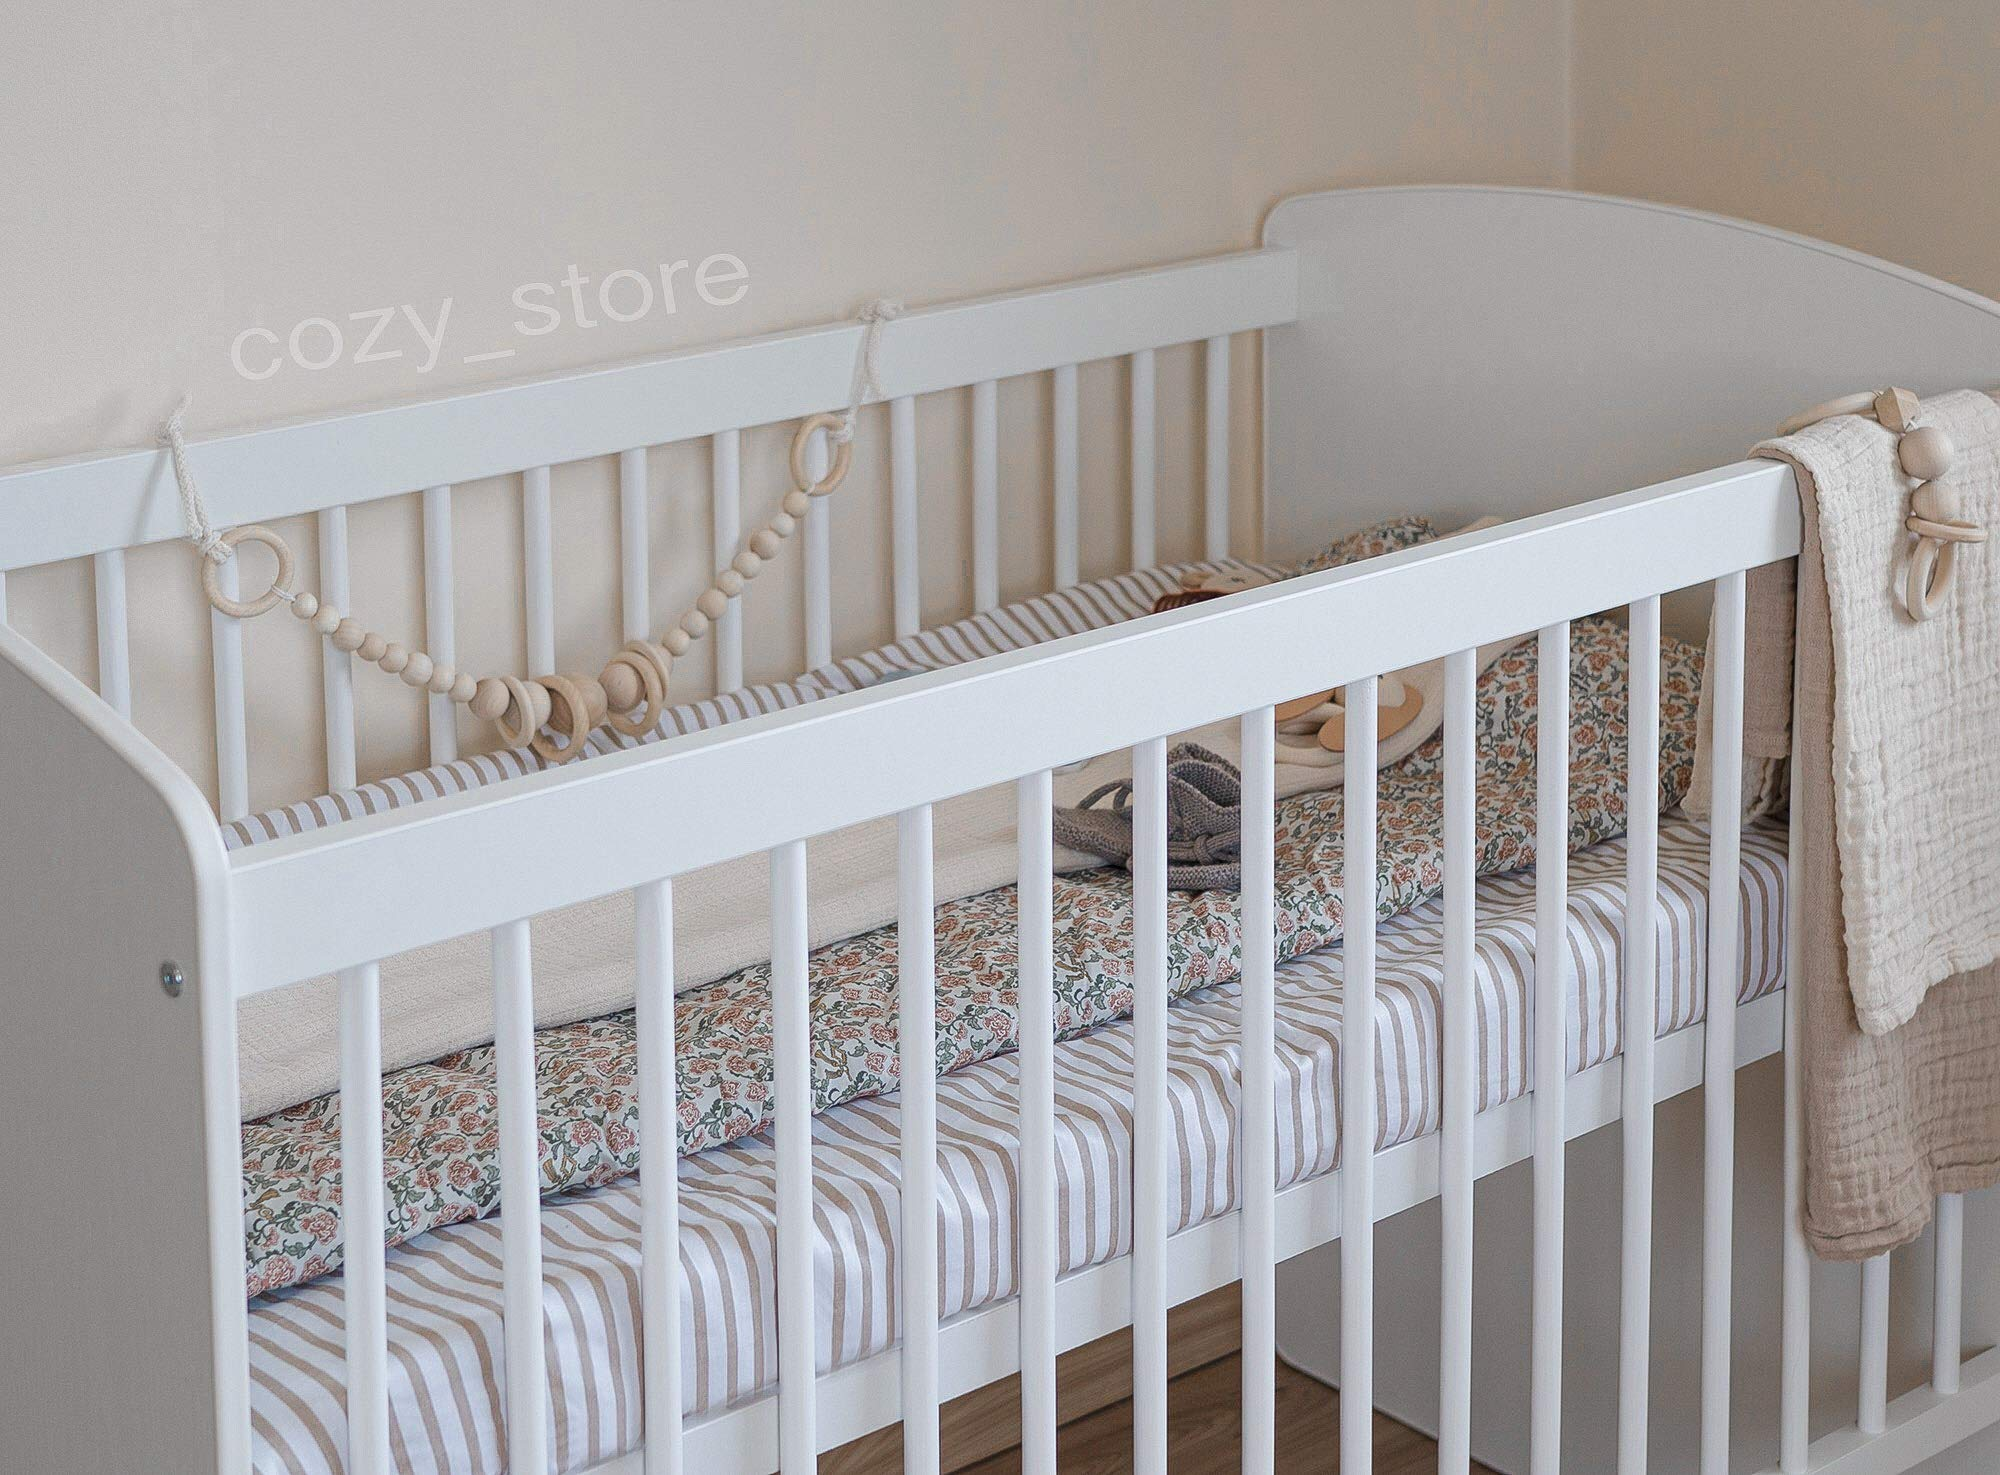 SOCOZY®   White Solid Pine Wood Baby Cot Bed I Free Healthy Coconut&BUCKWHEAT Mattress I Bed for Baby   3 Mattress Positions   ECO Paint   Minimalistic   120x60 SOCOZY ✔ HEALTH your growing child is the most important for us - The bed is made of ecological board and pine wood and the cot is covered with non-toxic lacquers ✔ ENJOY the view of the child playing in the cot and have a moment to yourself - as mom you deserve it more than anyone else ✔ GIVE YOUR CHILD a peaceful and helathy sleep - Coconut mat provides a flat, hard but also elastic support for the body while sleeping, perfect air circulation and humidity control. The mat is ecological. 2